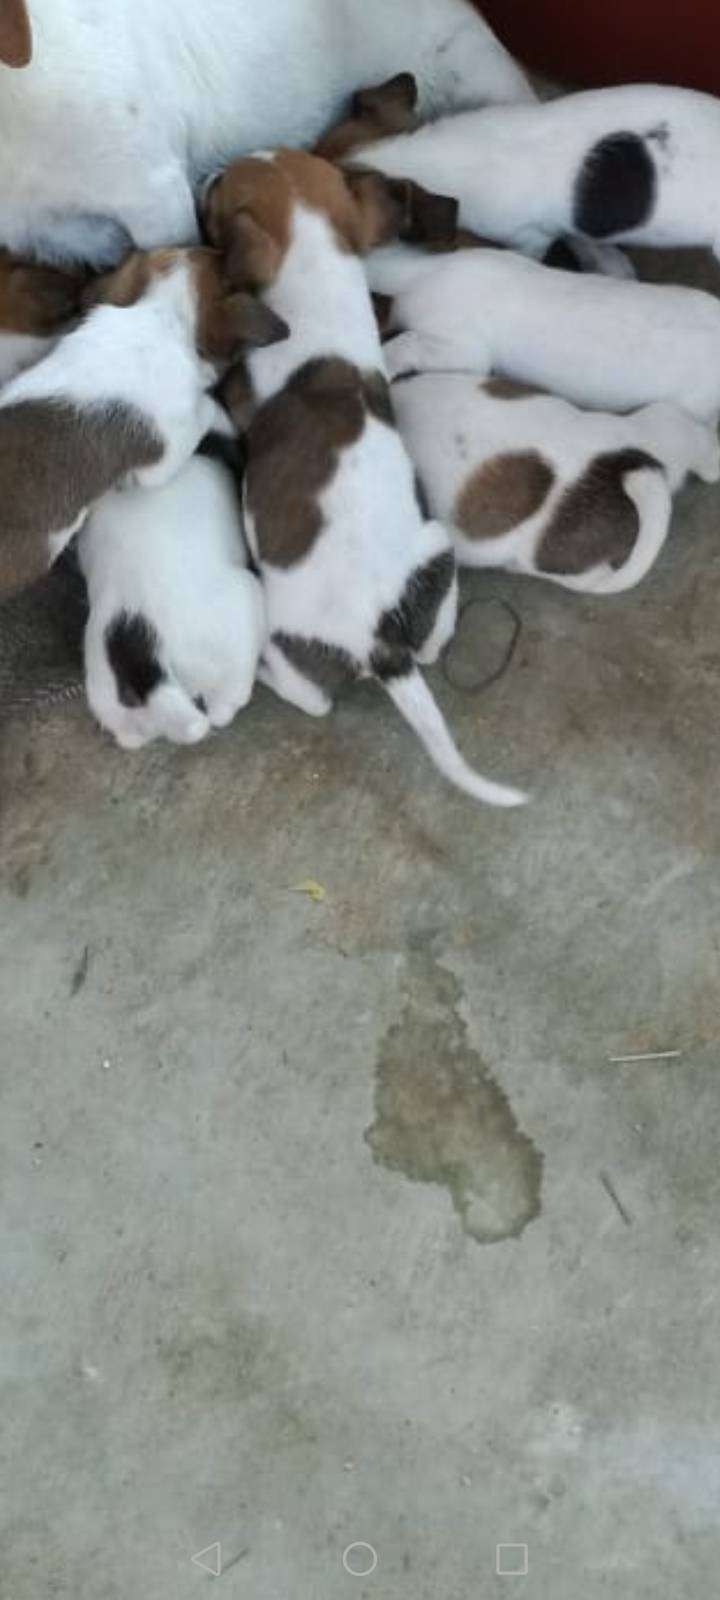 Pure breed short leg Jack Russell puppies 8weeks old dewormed and vacc 0